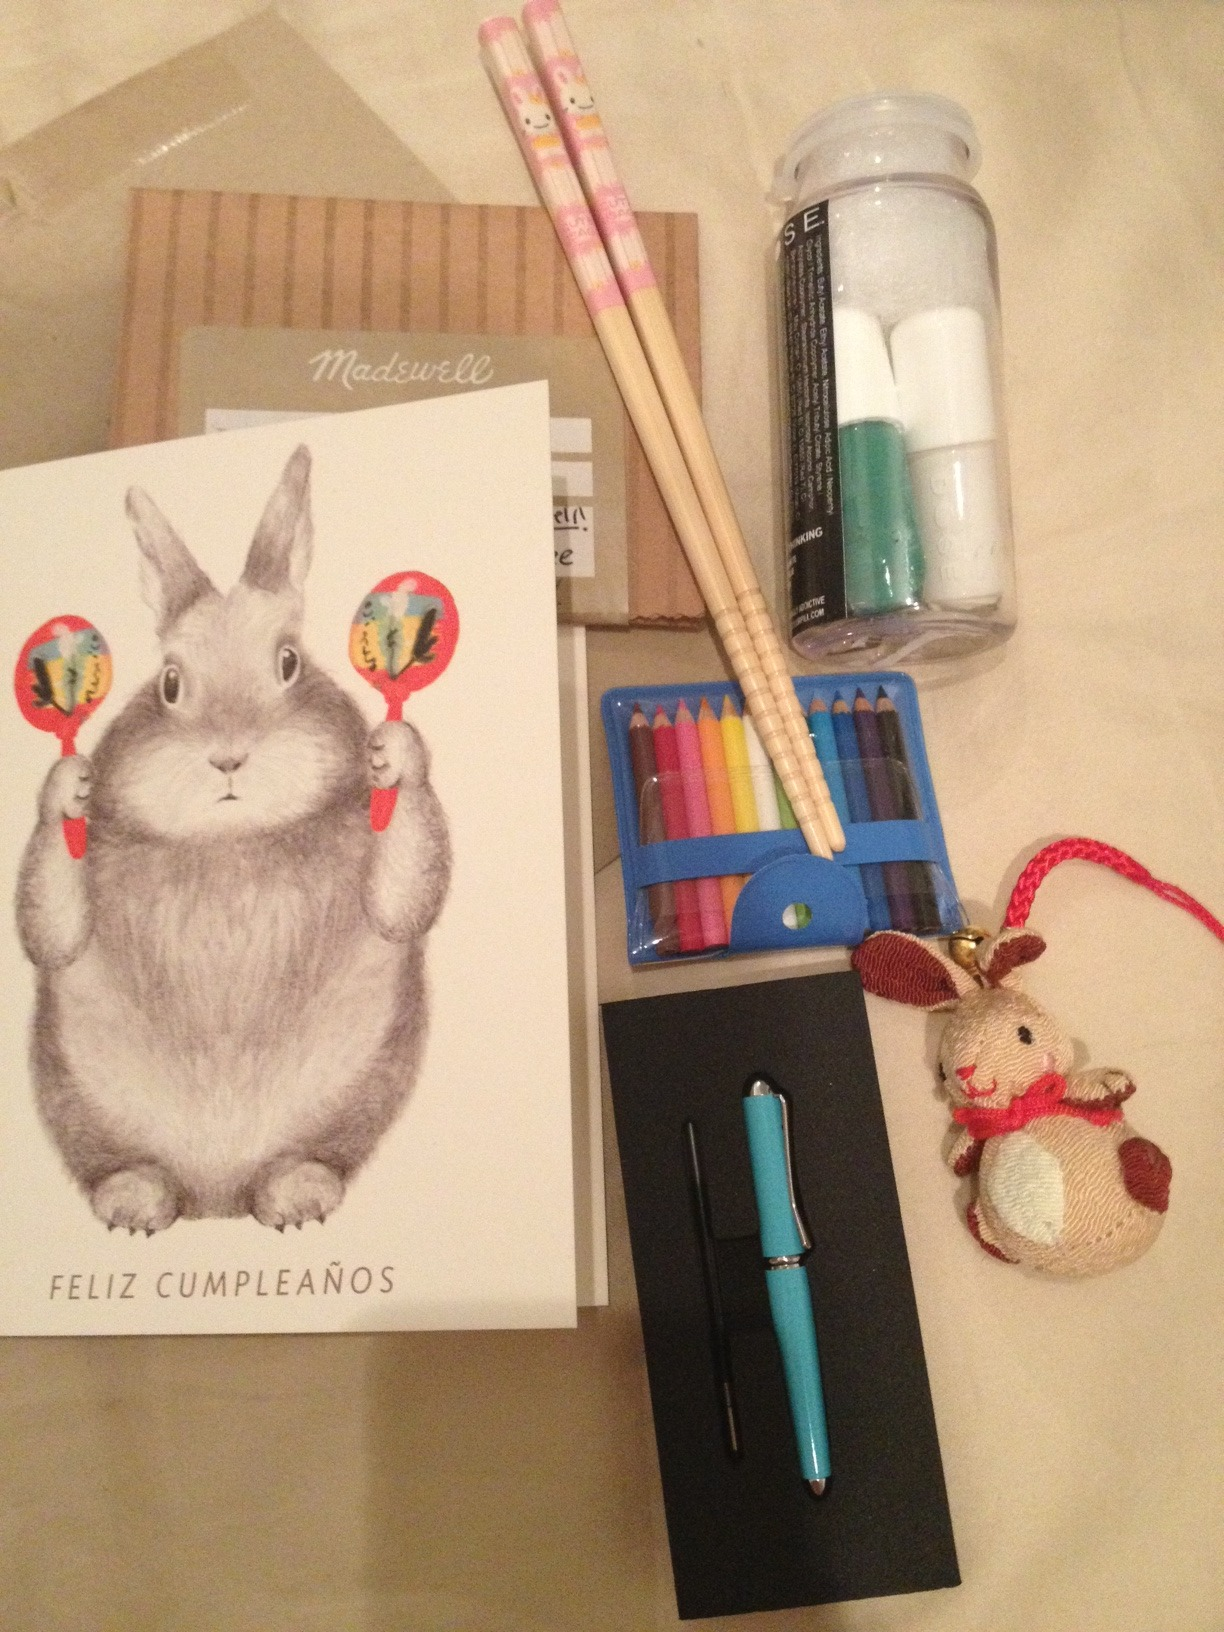 Excellent birthday haul. Lots of wonderfully tiny and bunny related things